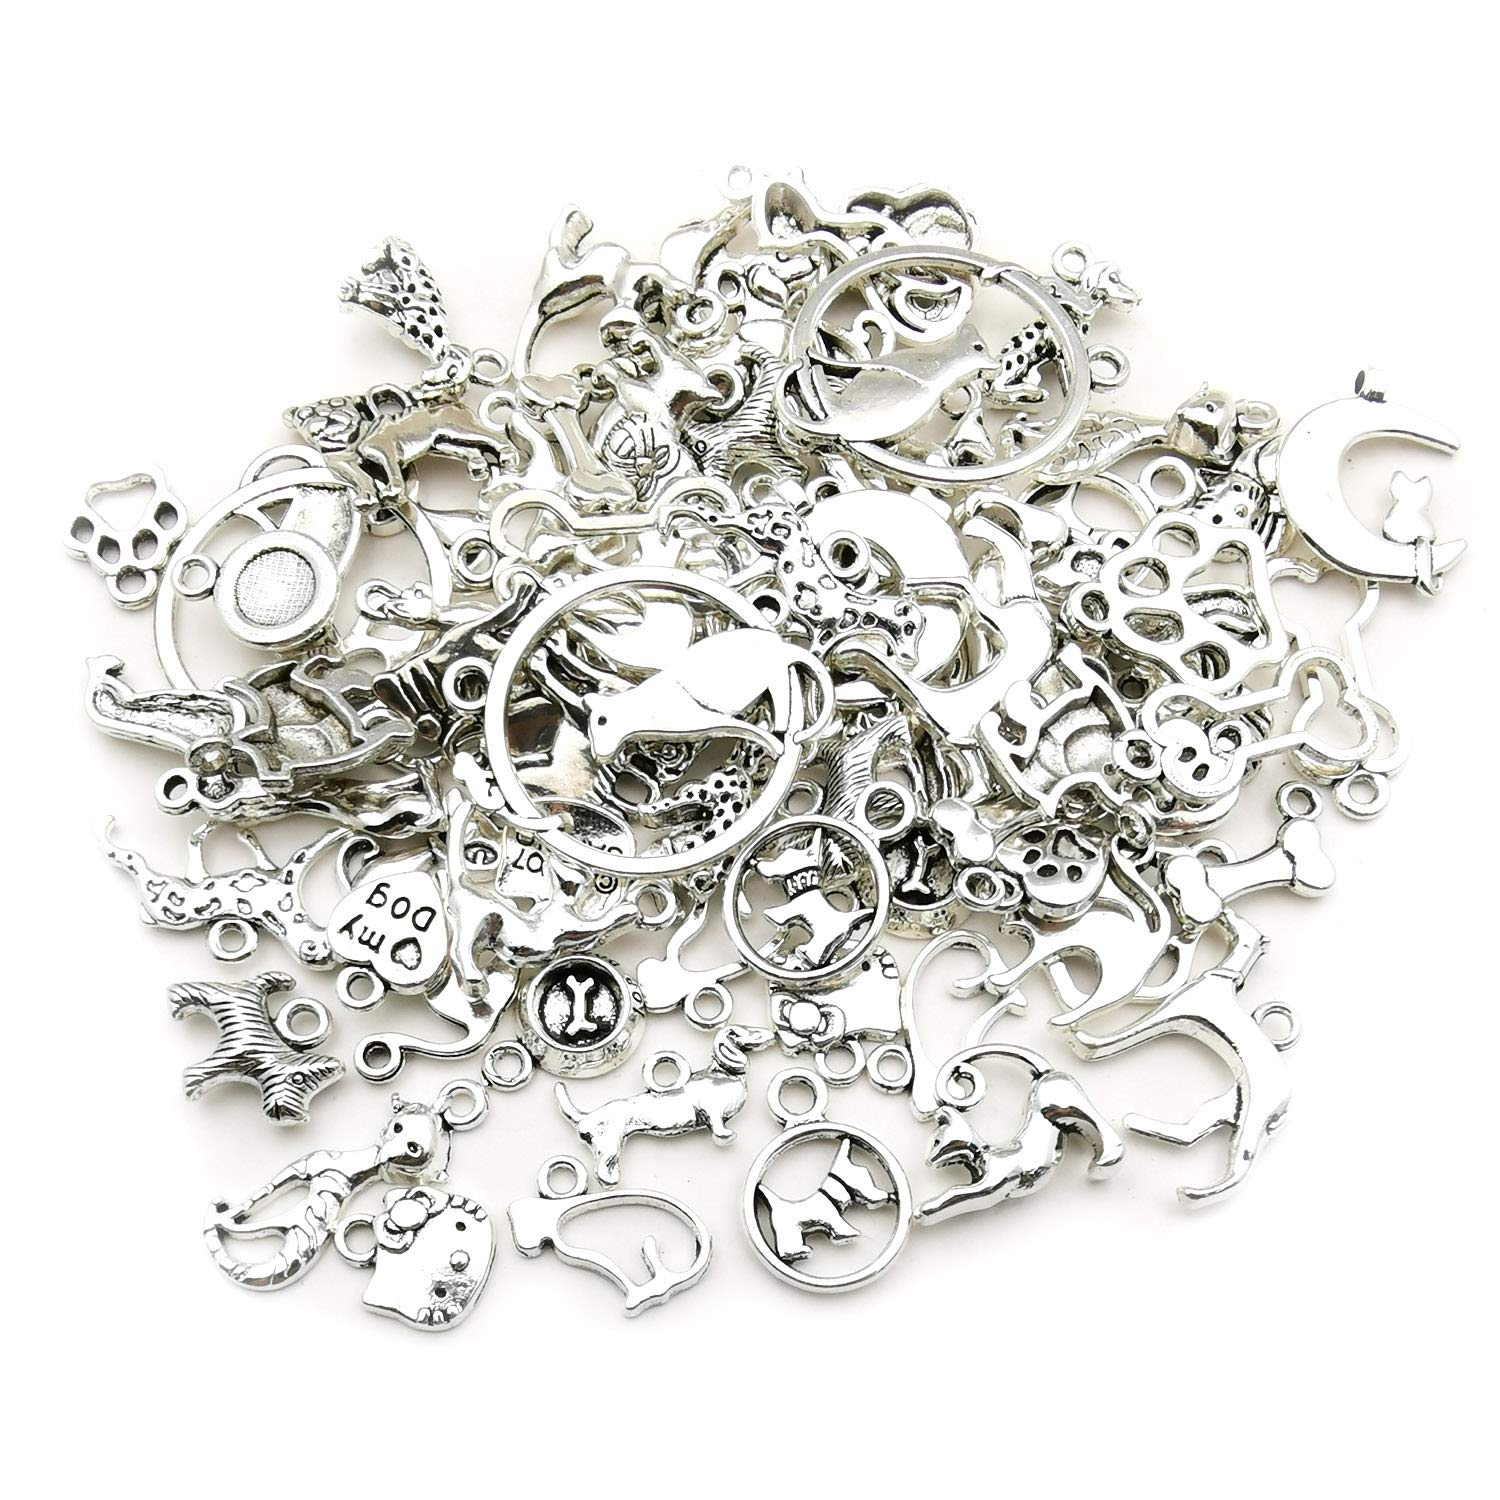 WOCRAFT 100g Craft Supplies Small Antique Silver Animals Sun Satr Charms Pendants for Crafting Jewelry Findings Making Accessory for DIY Necklace Bracelet M289